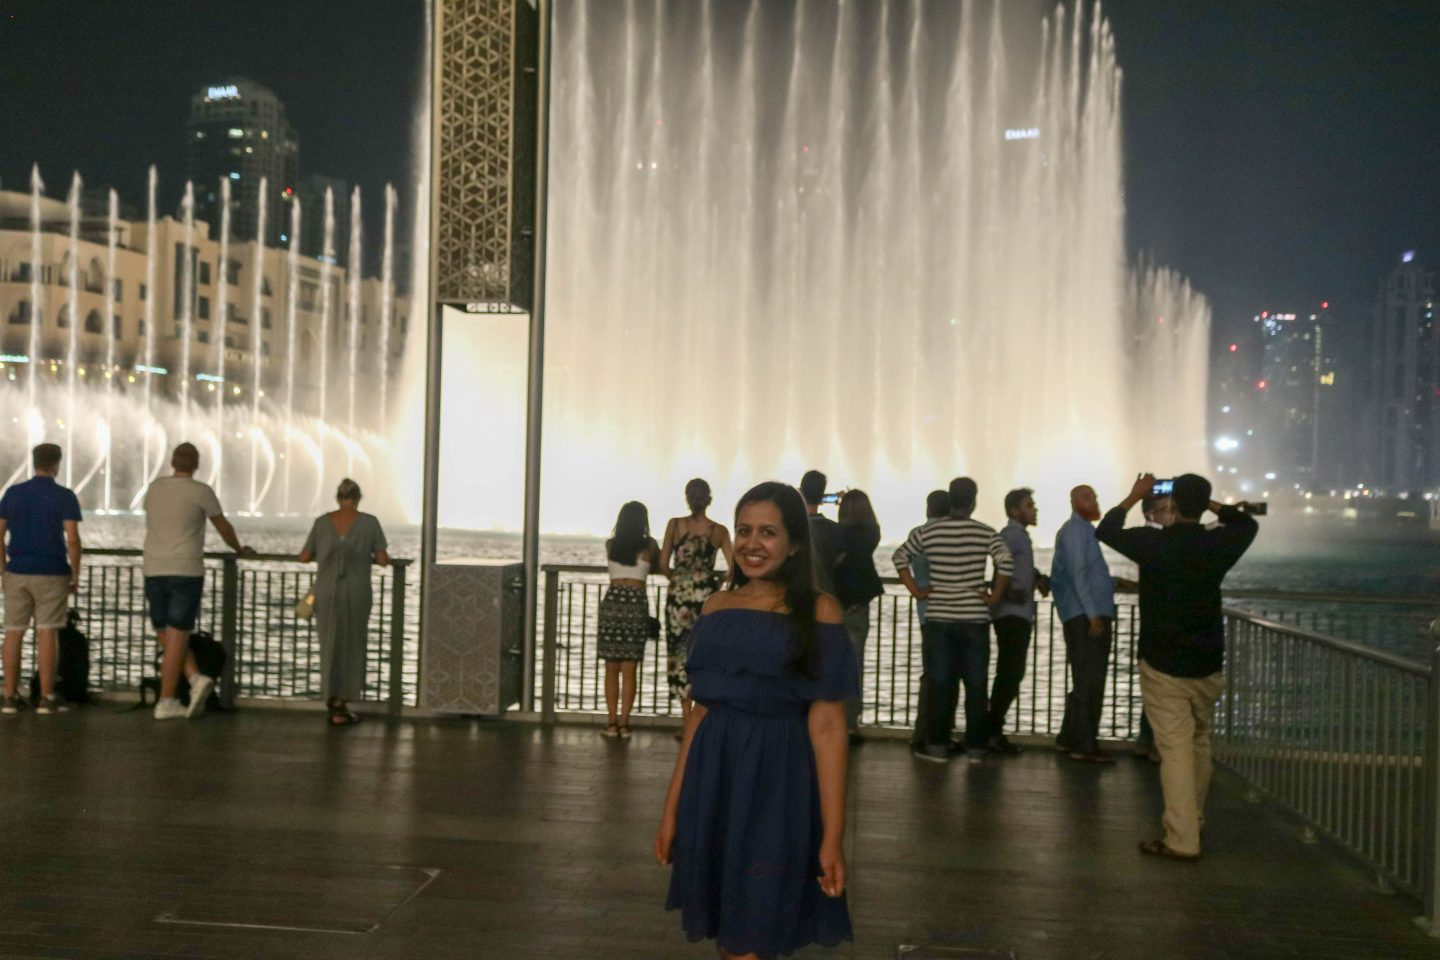 Dubai Fountains - Top 10 Things to do in Dubai - The Lifestyle Enthusiast Blog